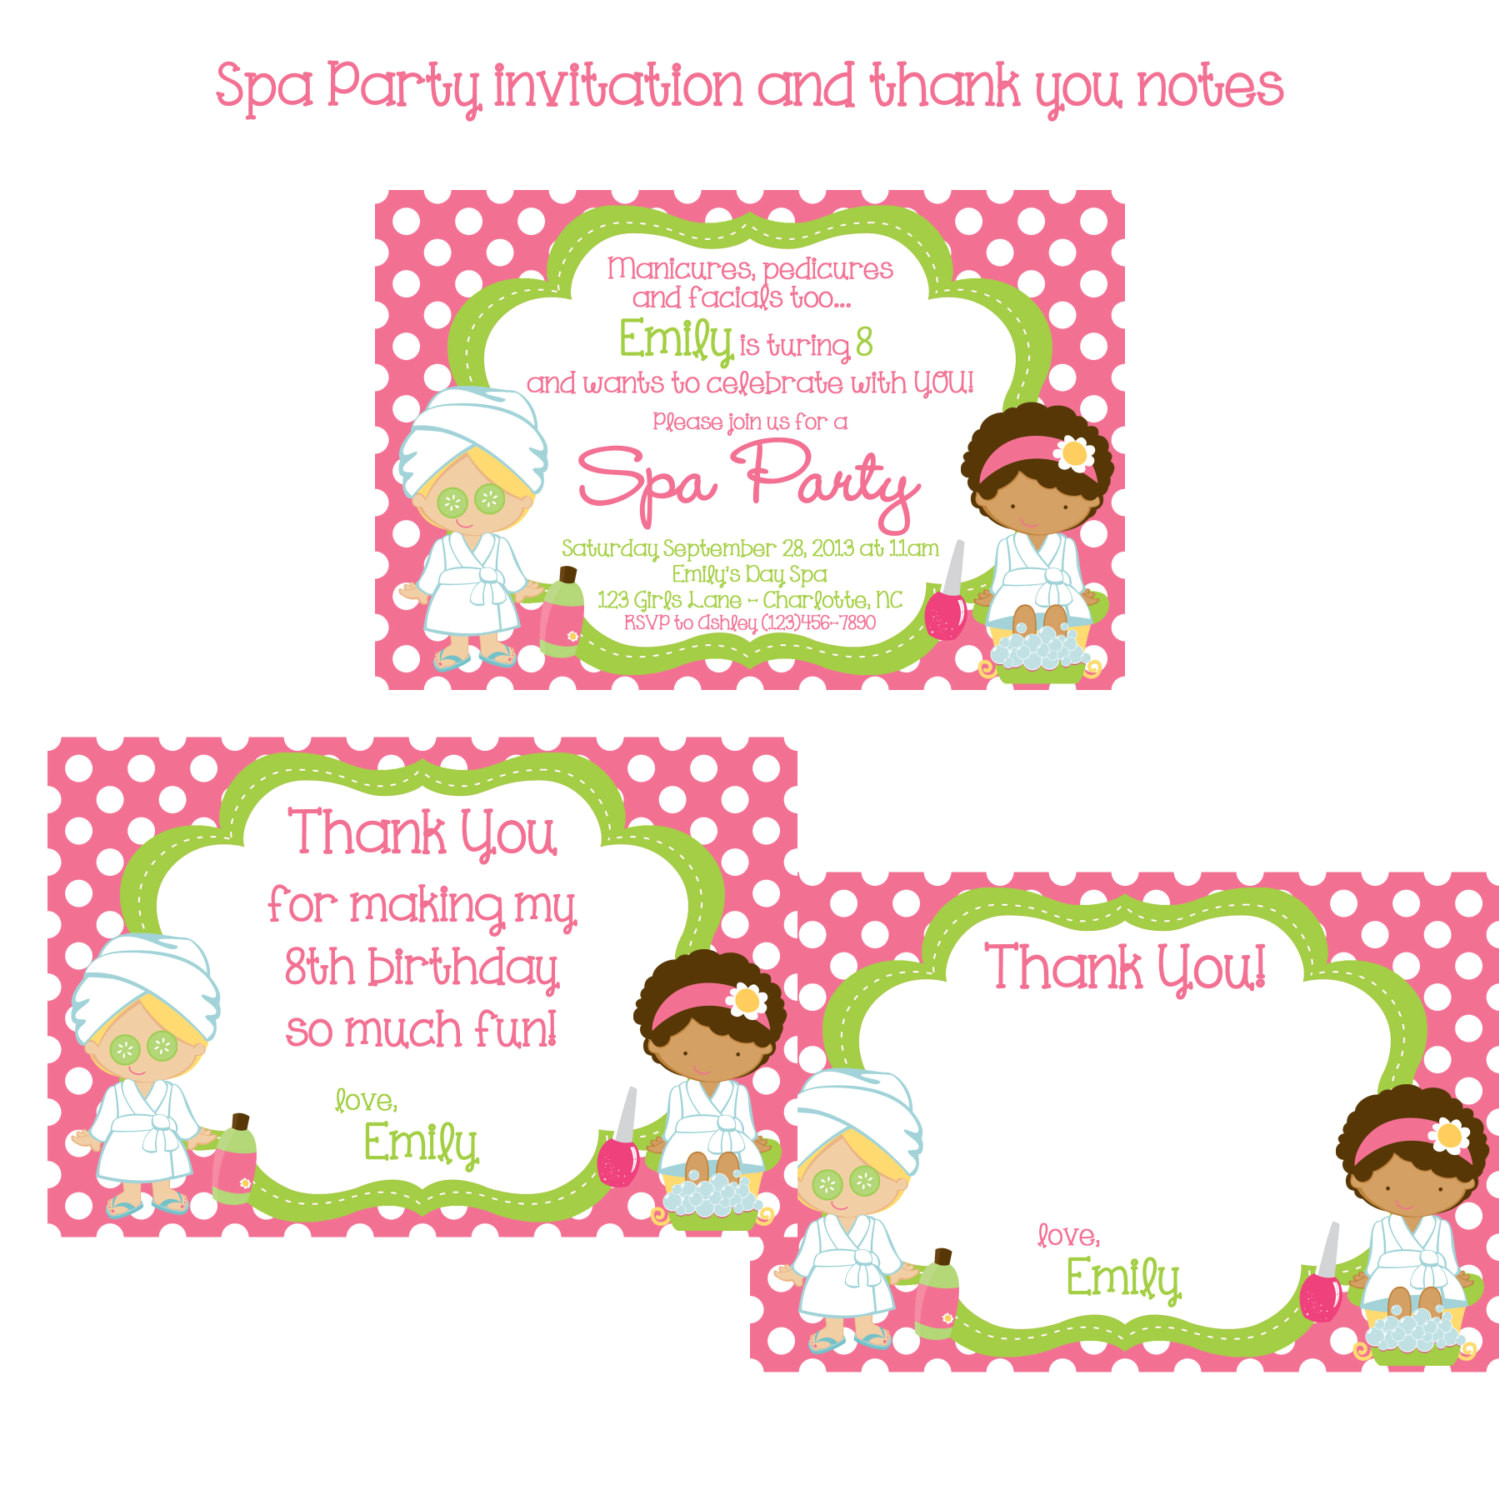 girls spa party invitation and thank you